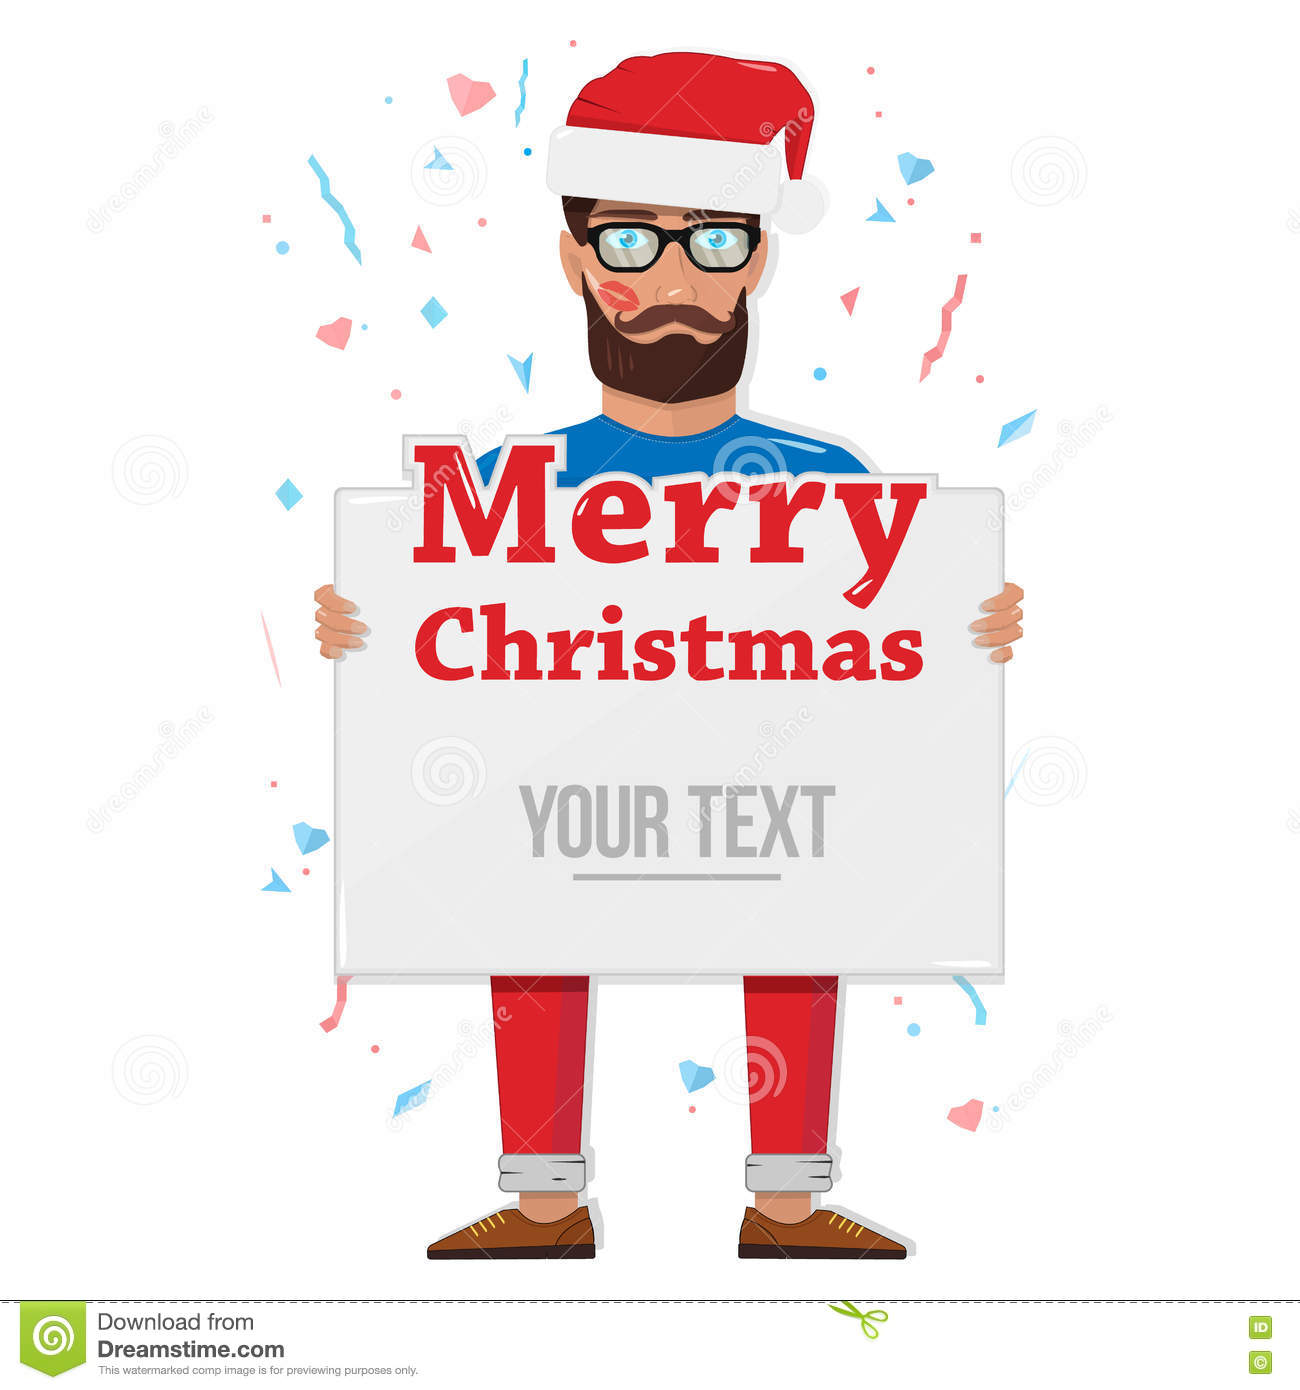 merry christmas man the board stock vector image  merry christmas man the board